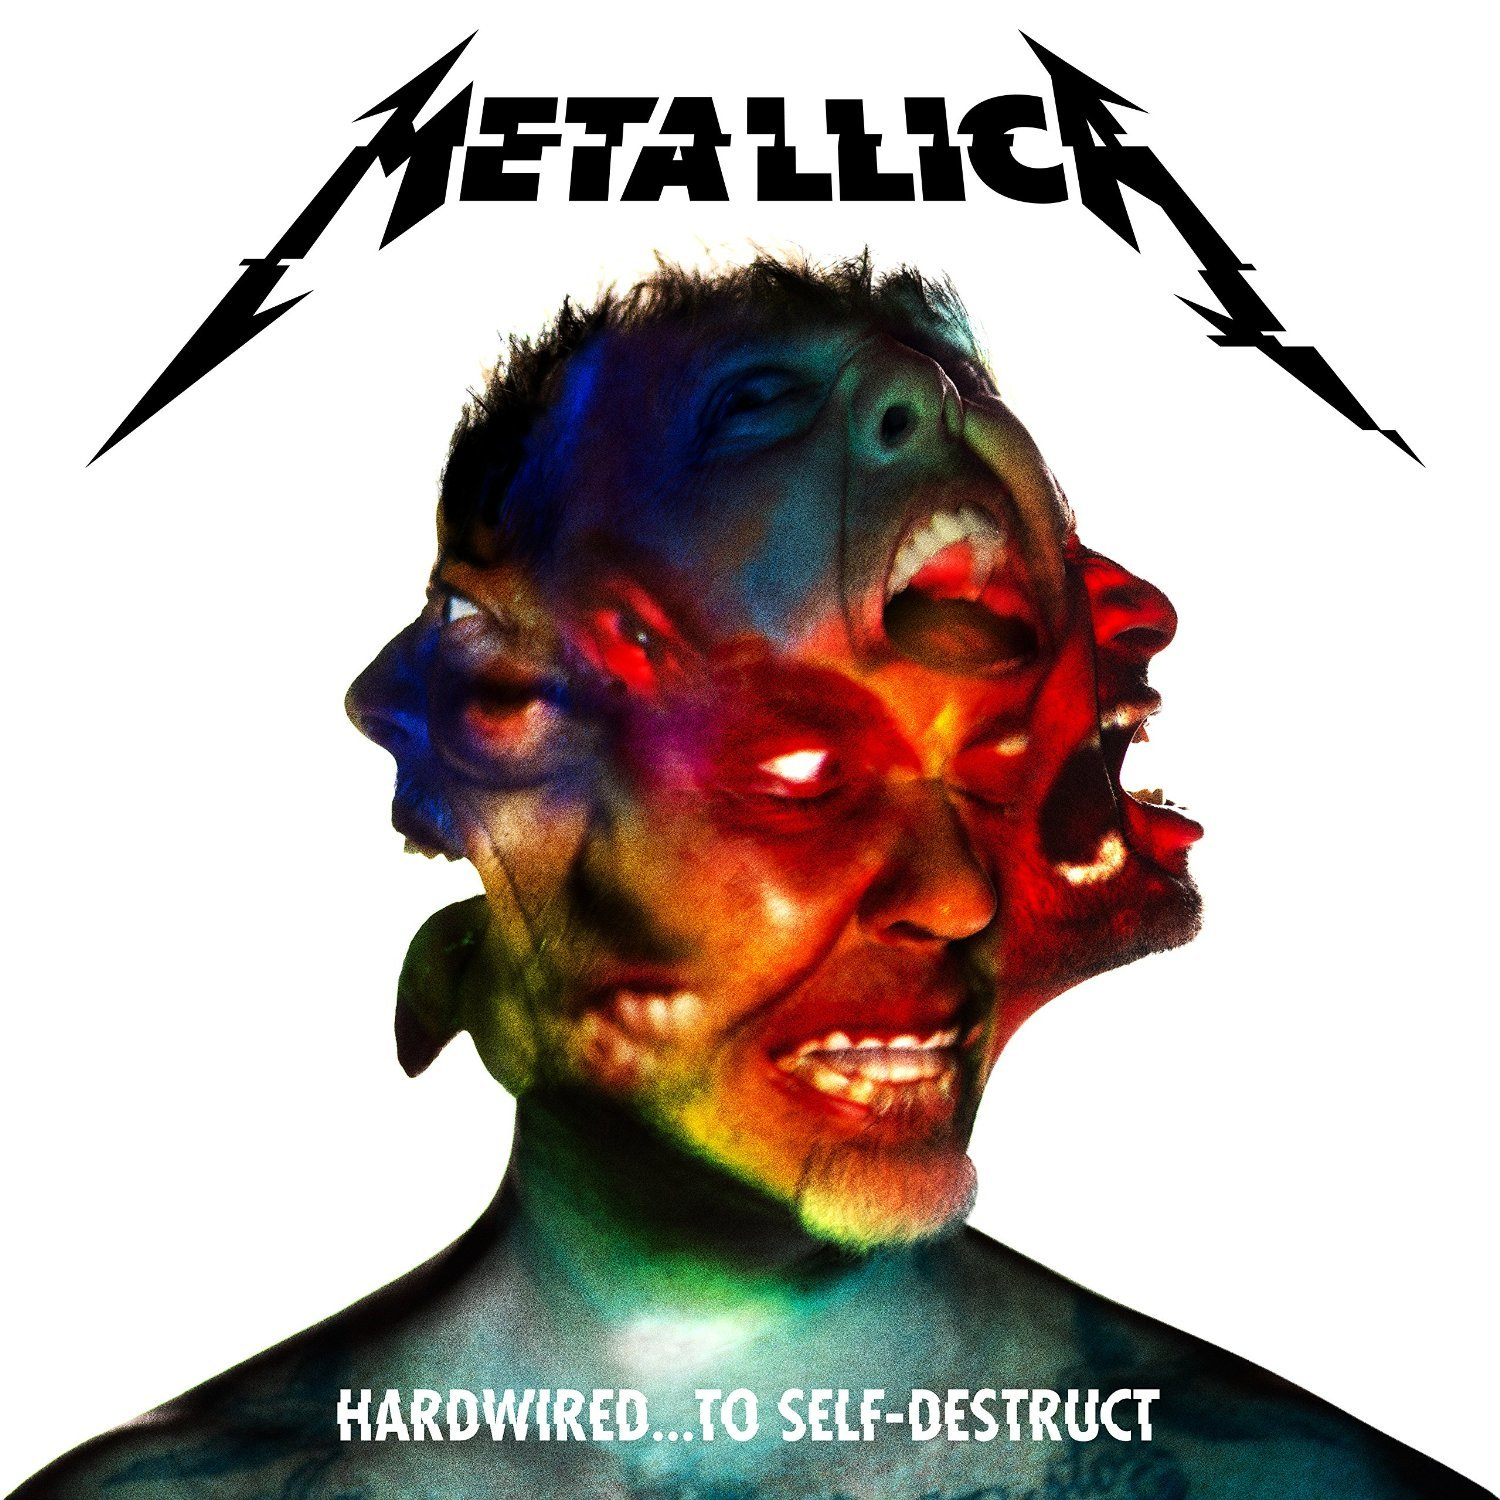 Hardwired…to Self-Destruct by Metallica image